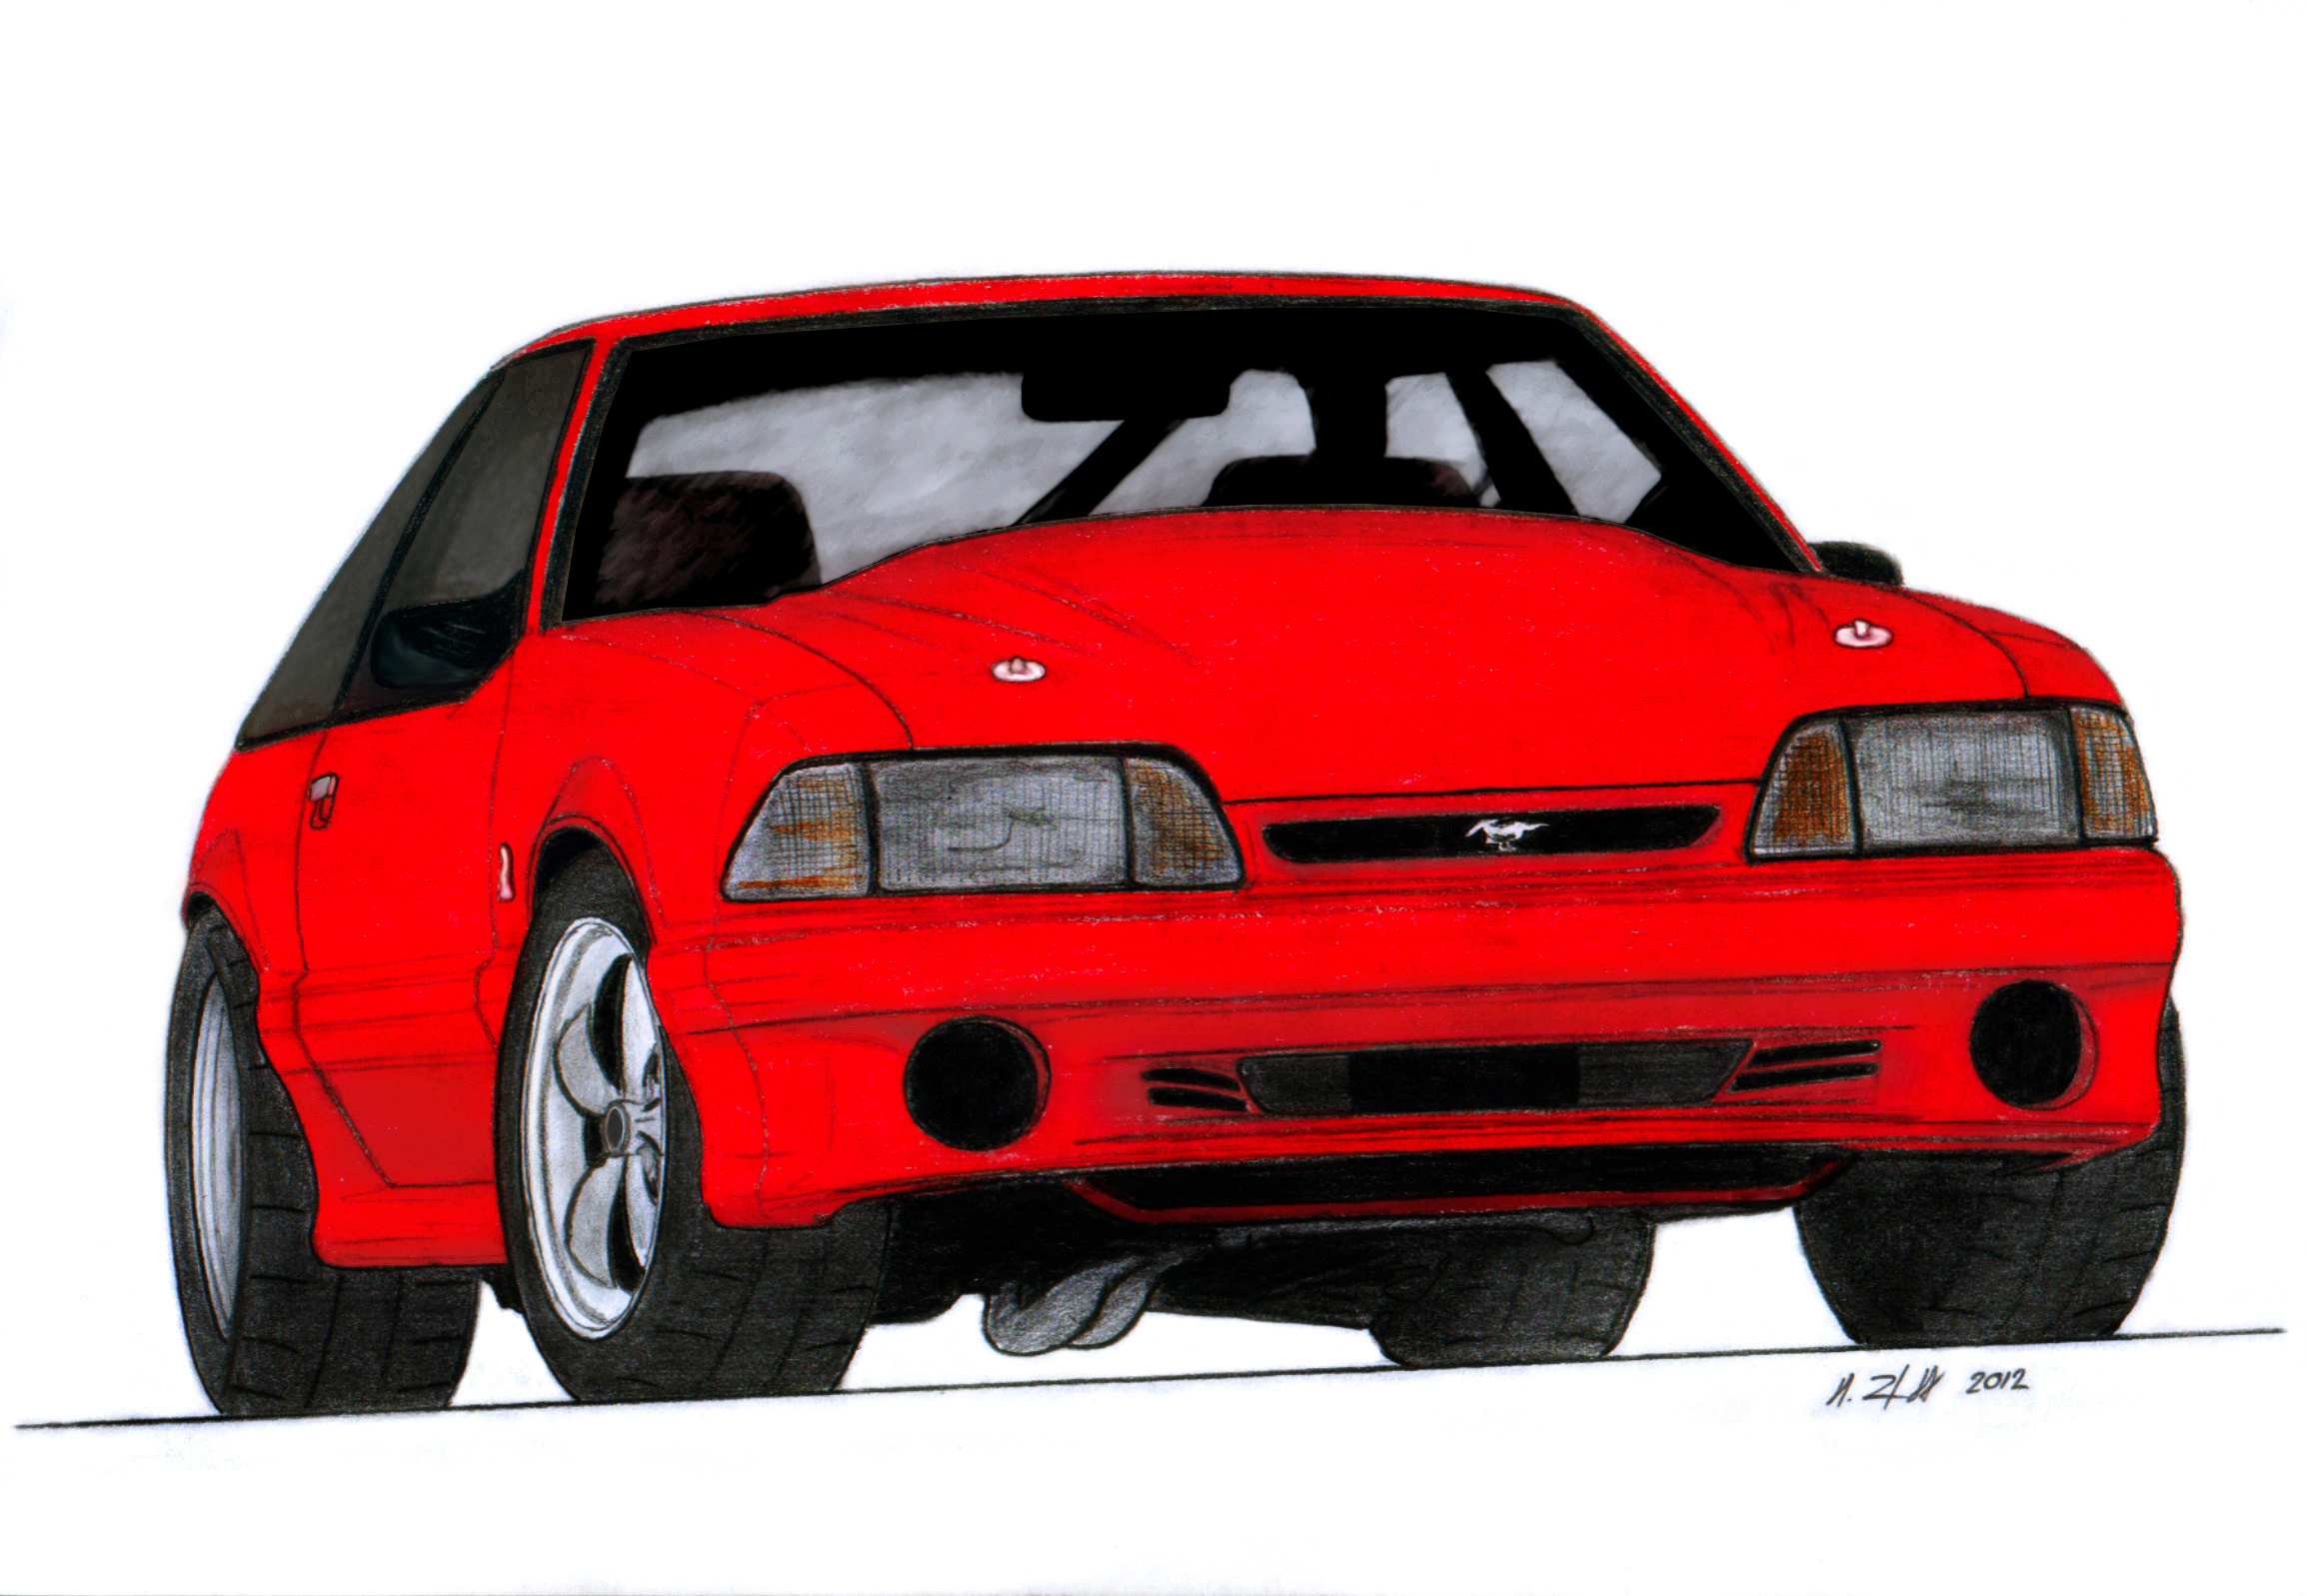 1993 Ford Mustang Cobra Drawing By Vertualissimo On Deviantart